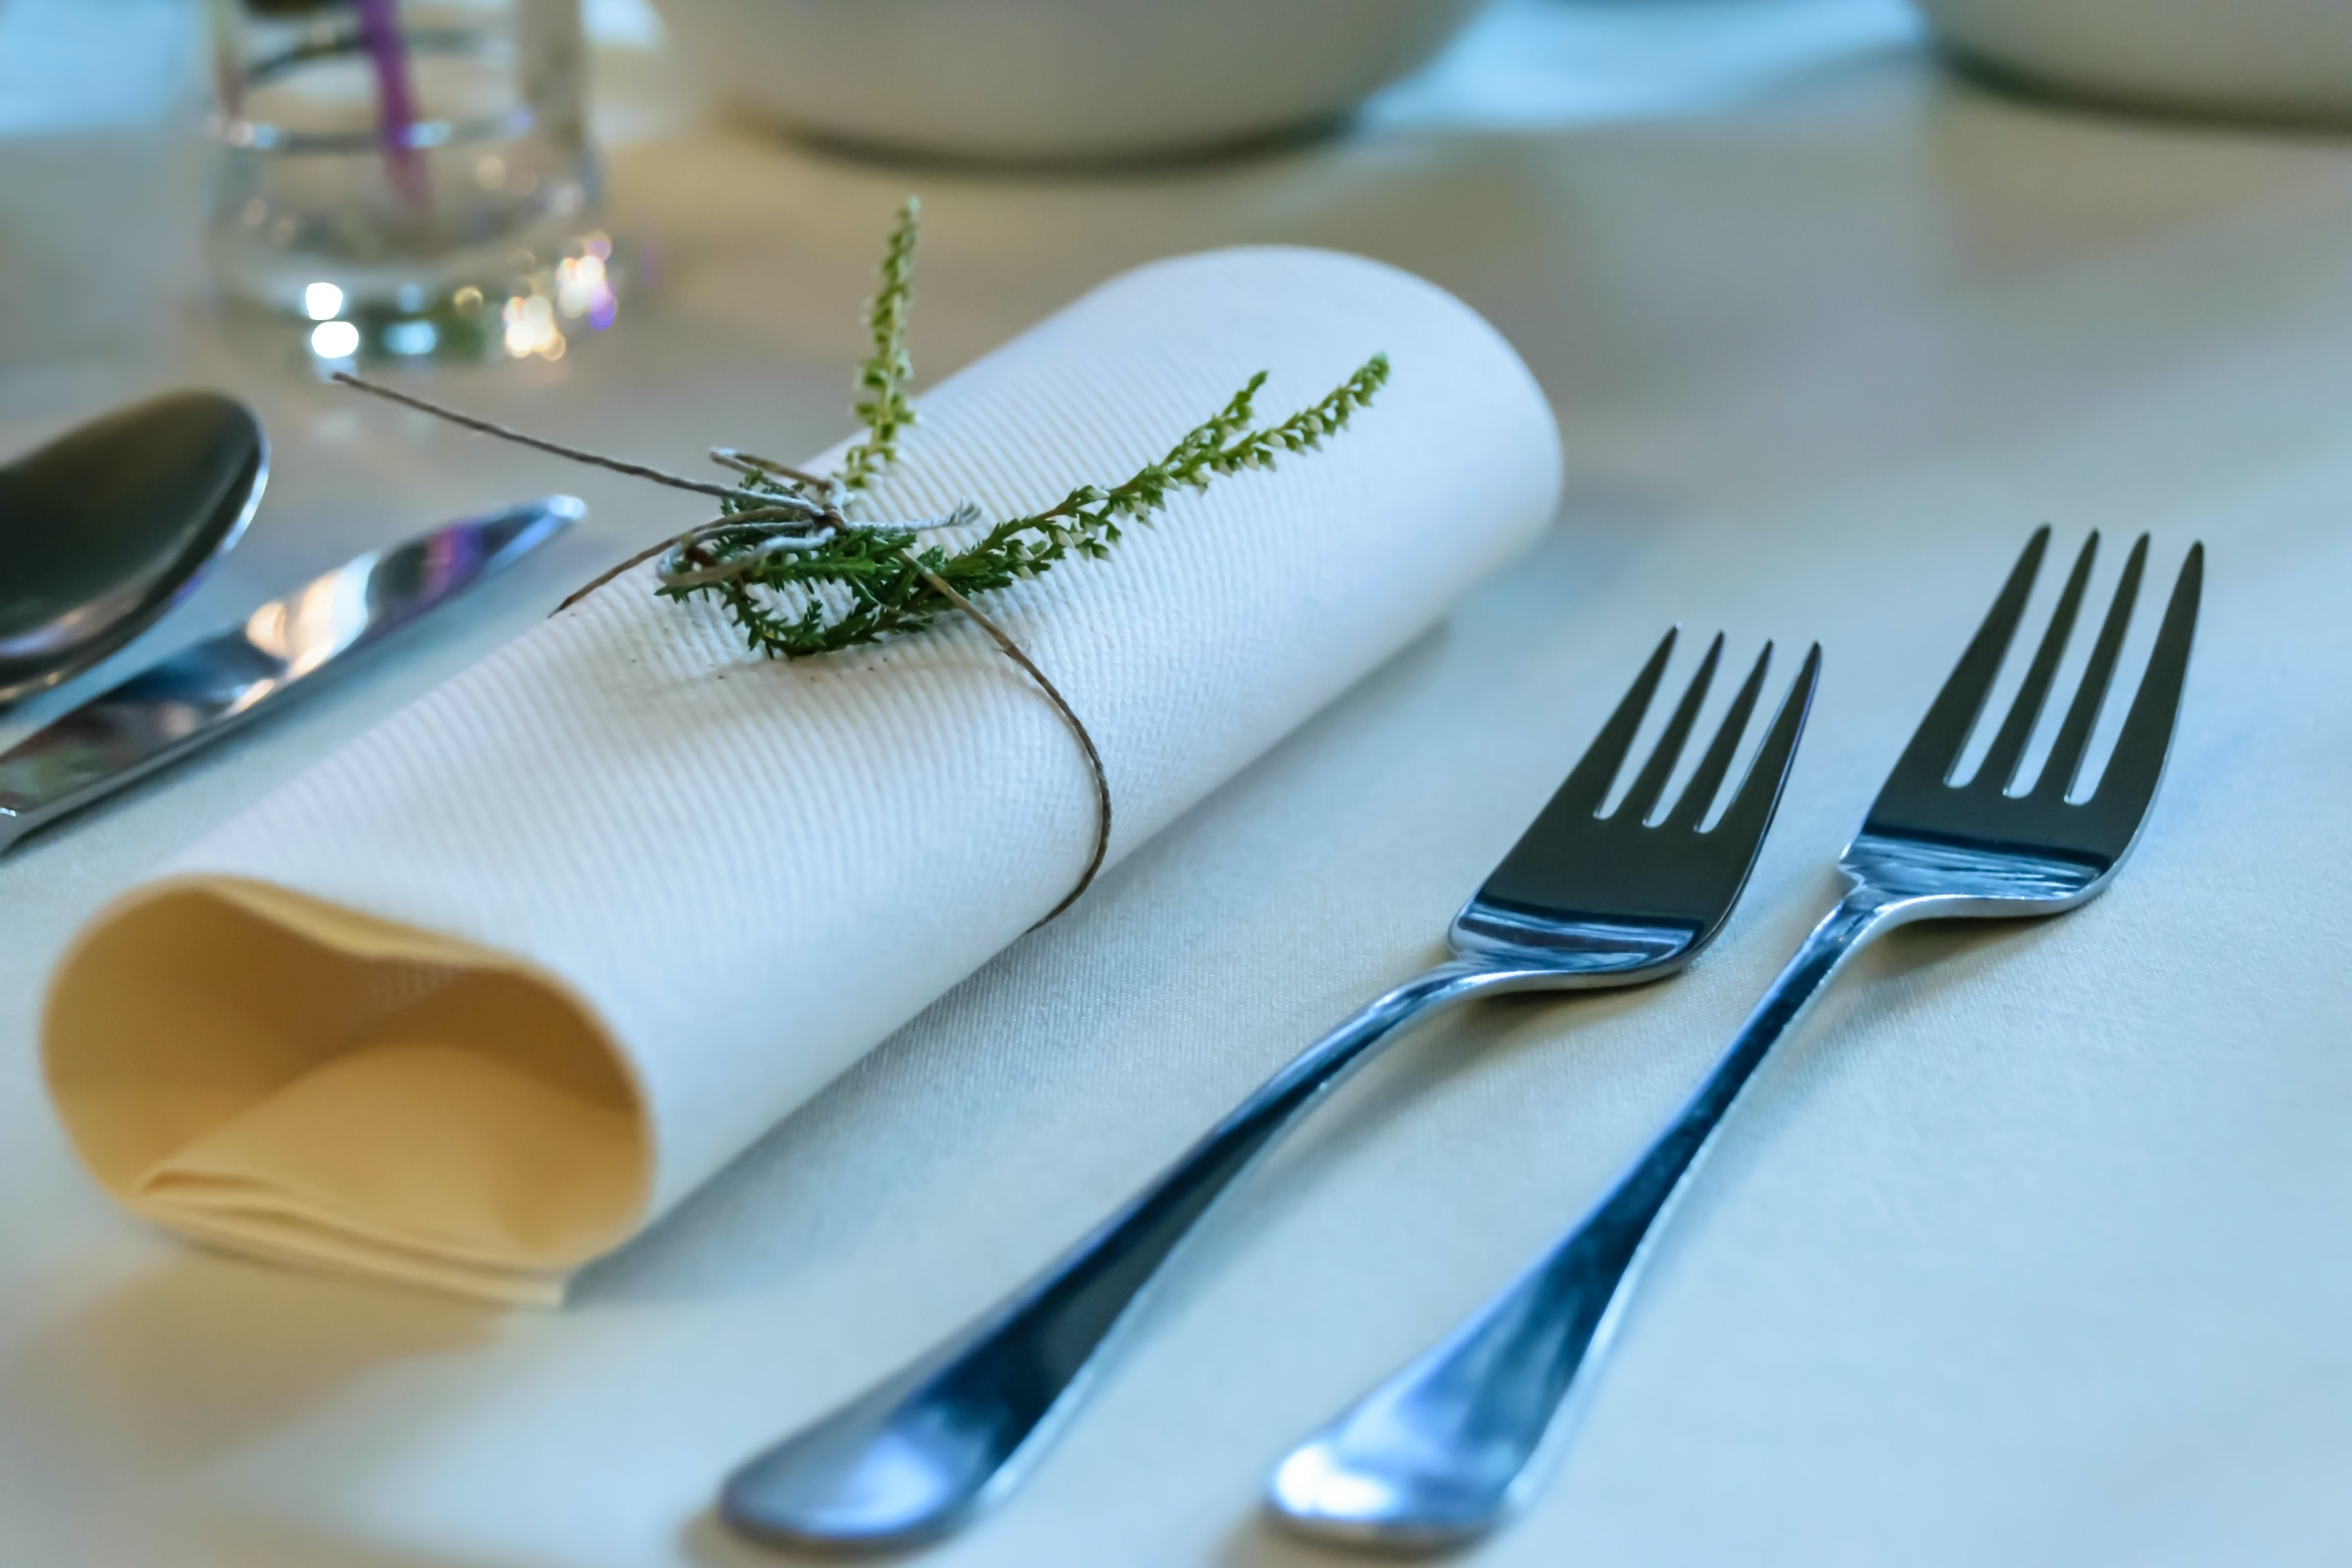 Stainless Steel Fork Beside Rolled Paper Towel With Parsley on Top